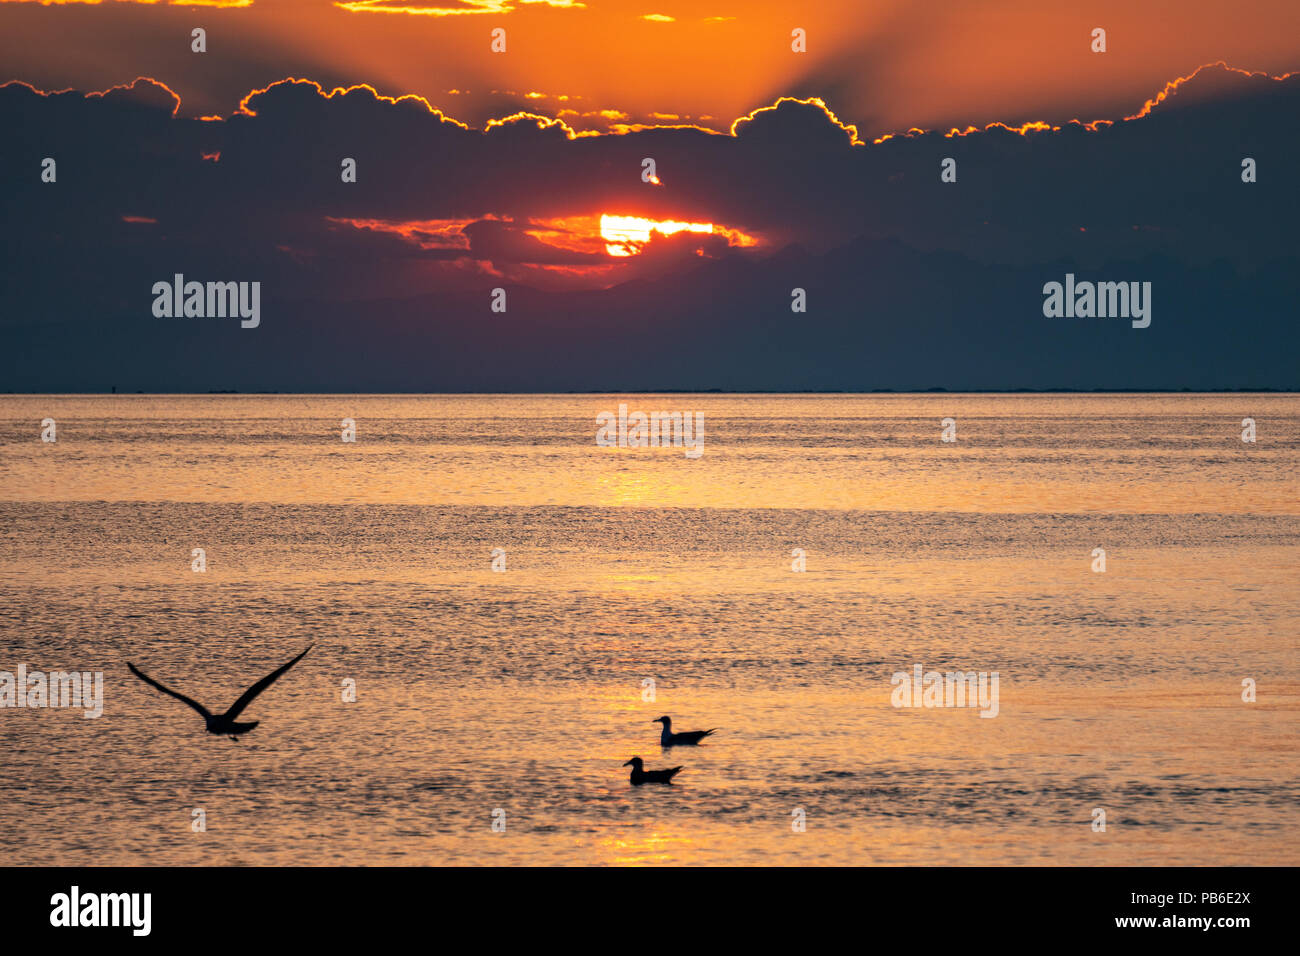 Trieste, Italy, 26 July 2018.  Seagulls at sunset in the Adriatic port of Trieste in northern Italy.  Photo by Enrique Shore - Stock Image